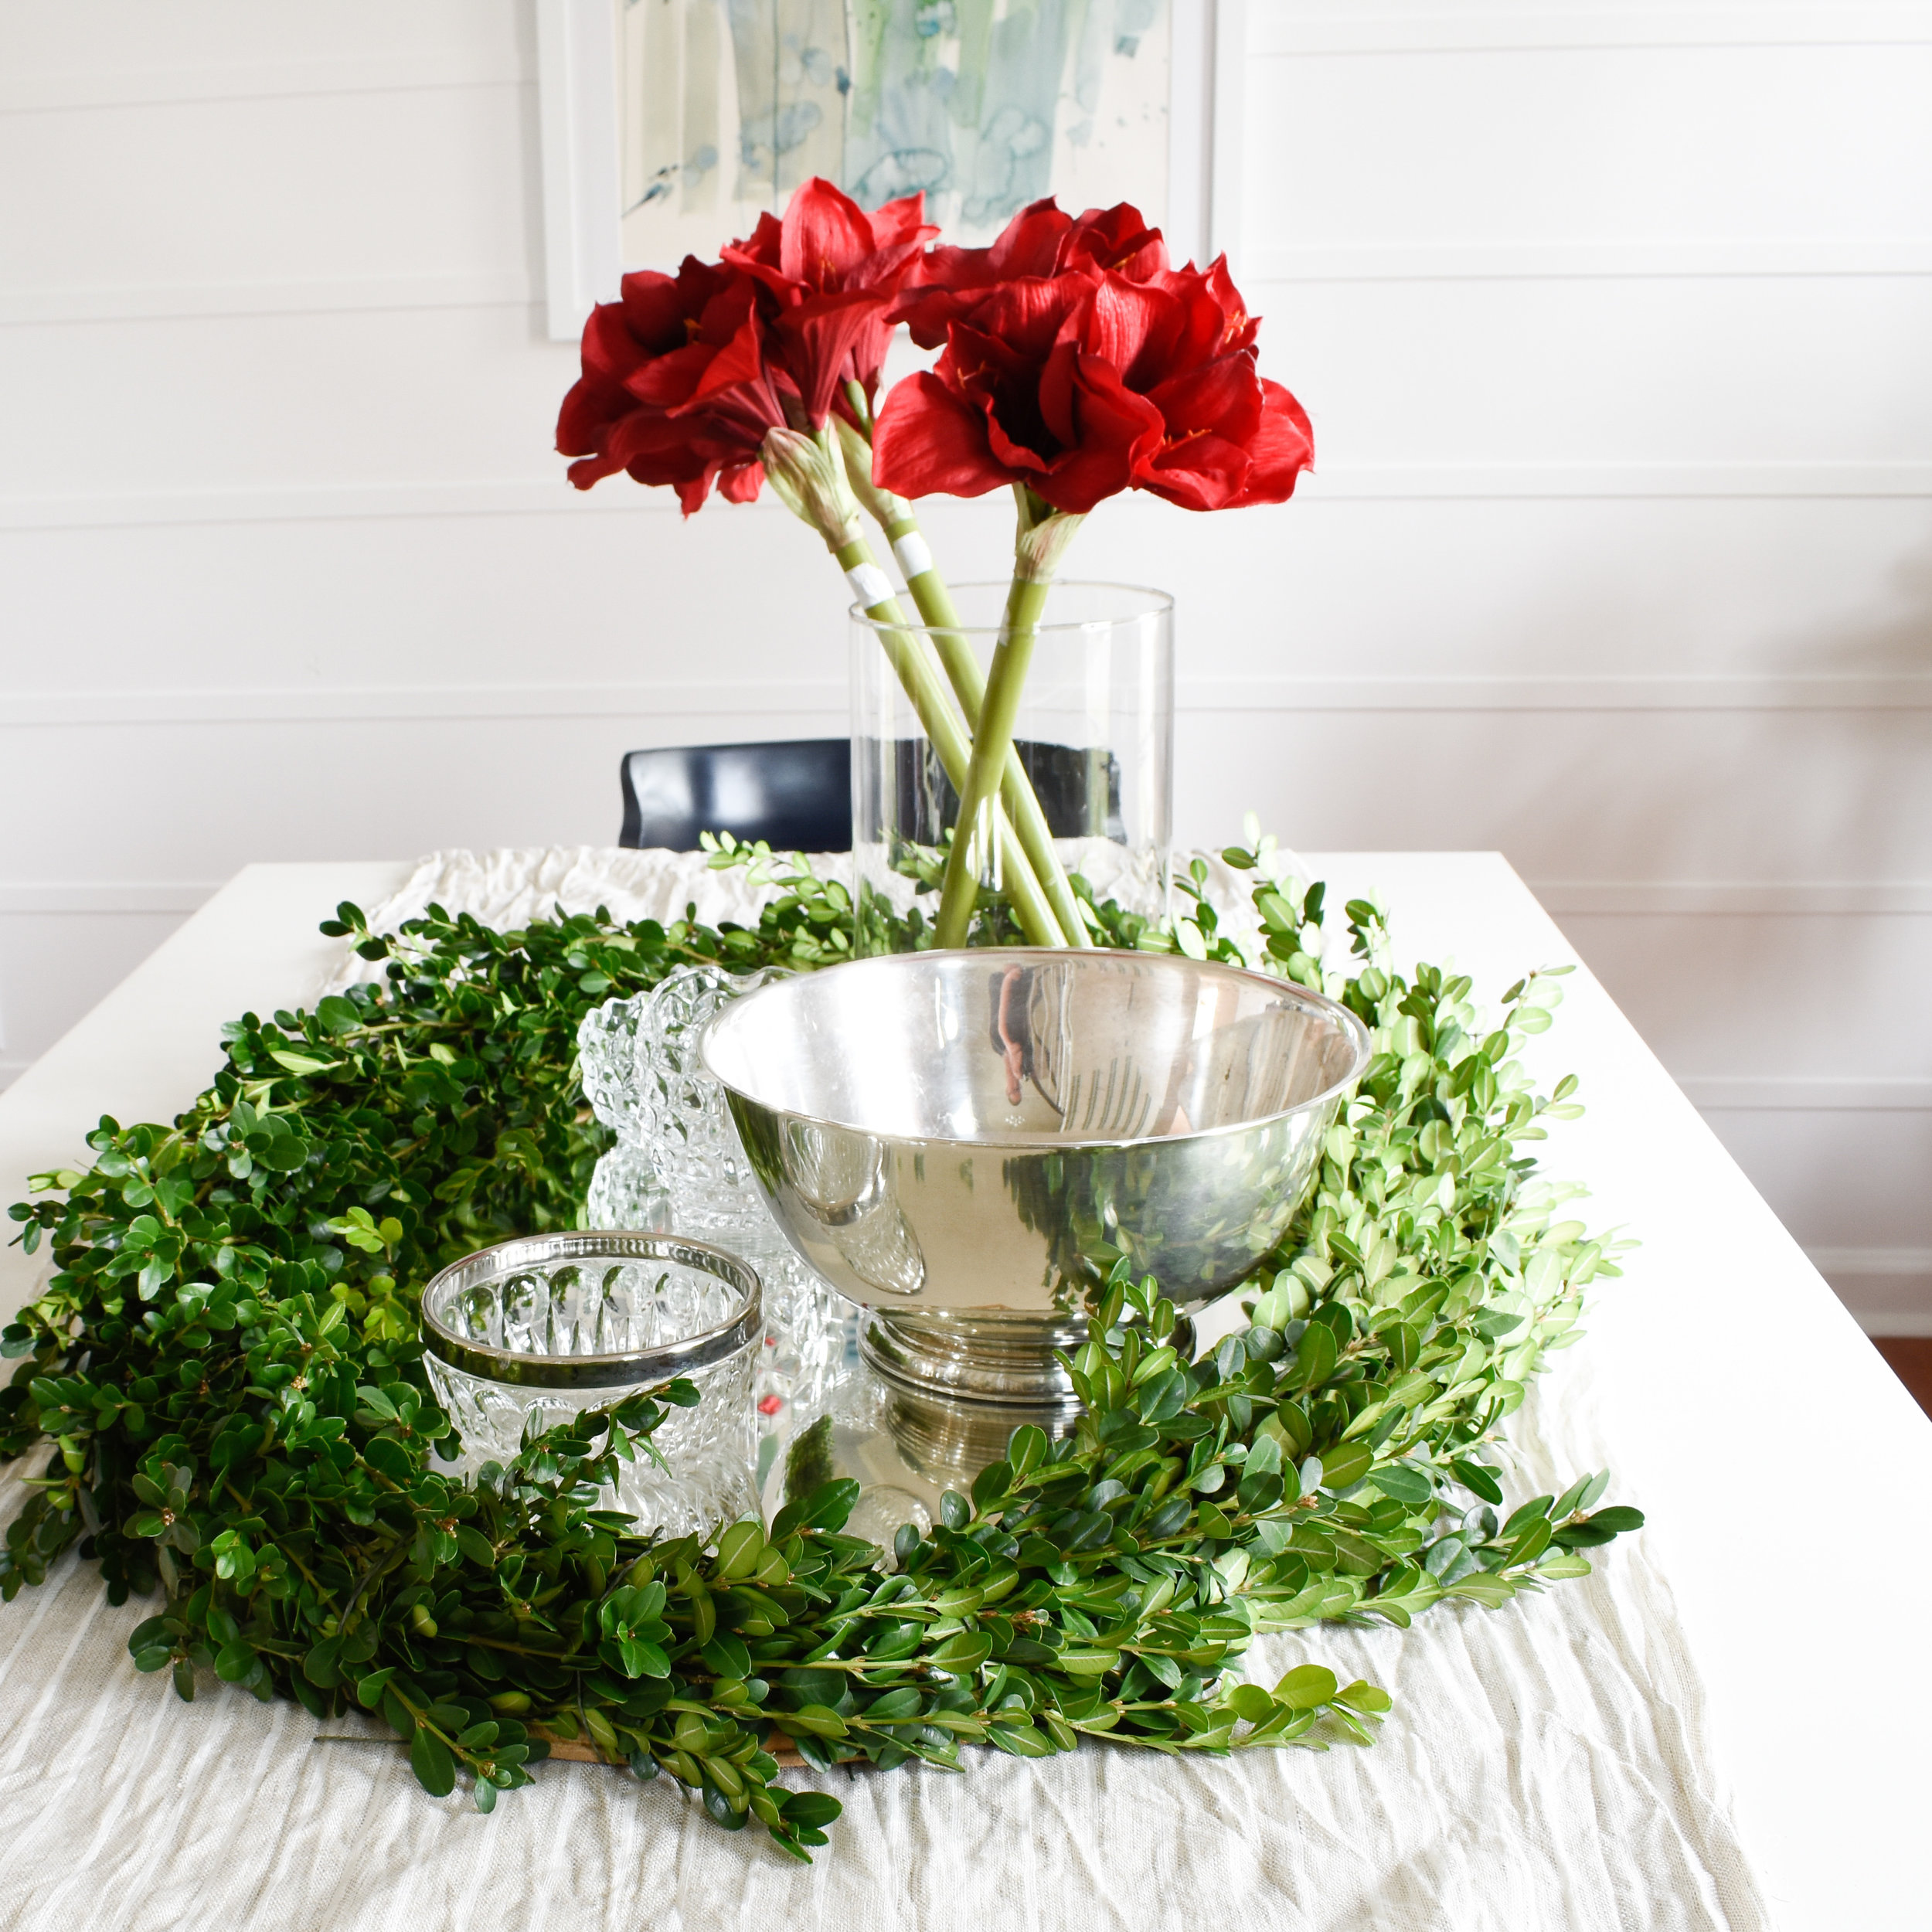 DIY Christmas table centerpiece with boxwood yard clippings